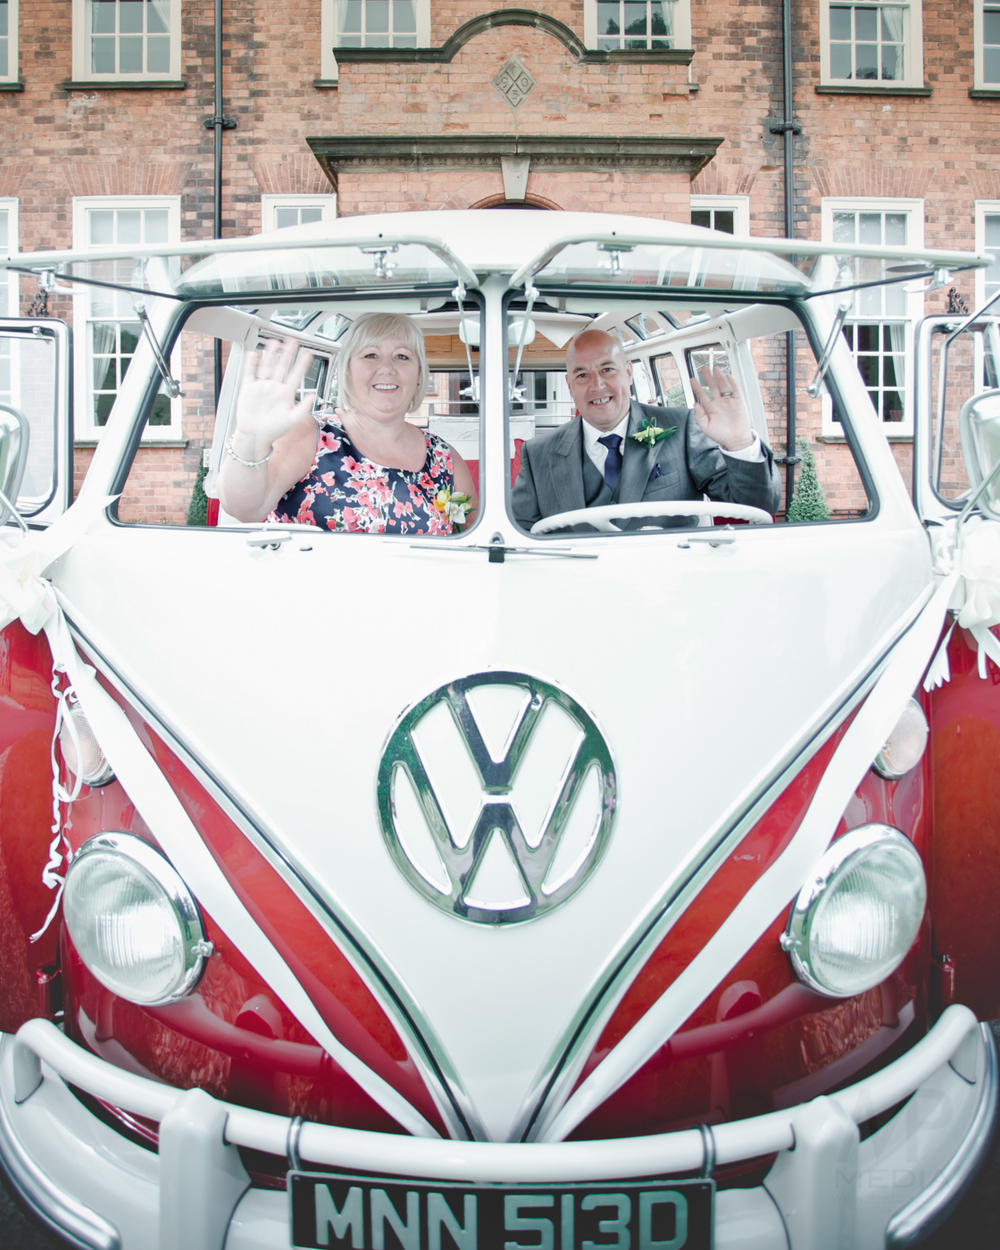 362 - Chris and Natalies Wedding (MAIN) - DO NOT SHARE THIS IMAGES ONLINE -0669.JPG